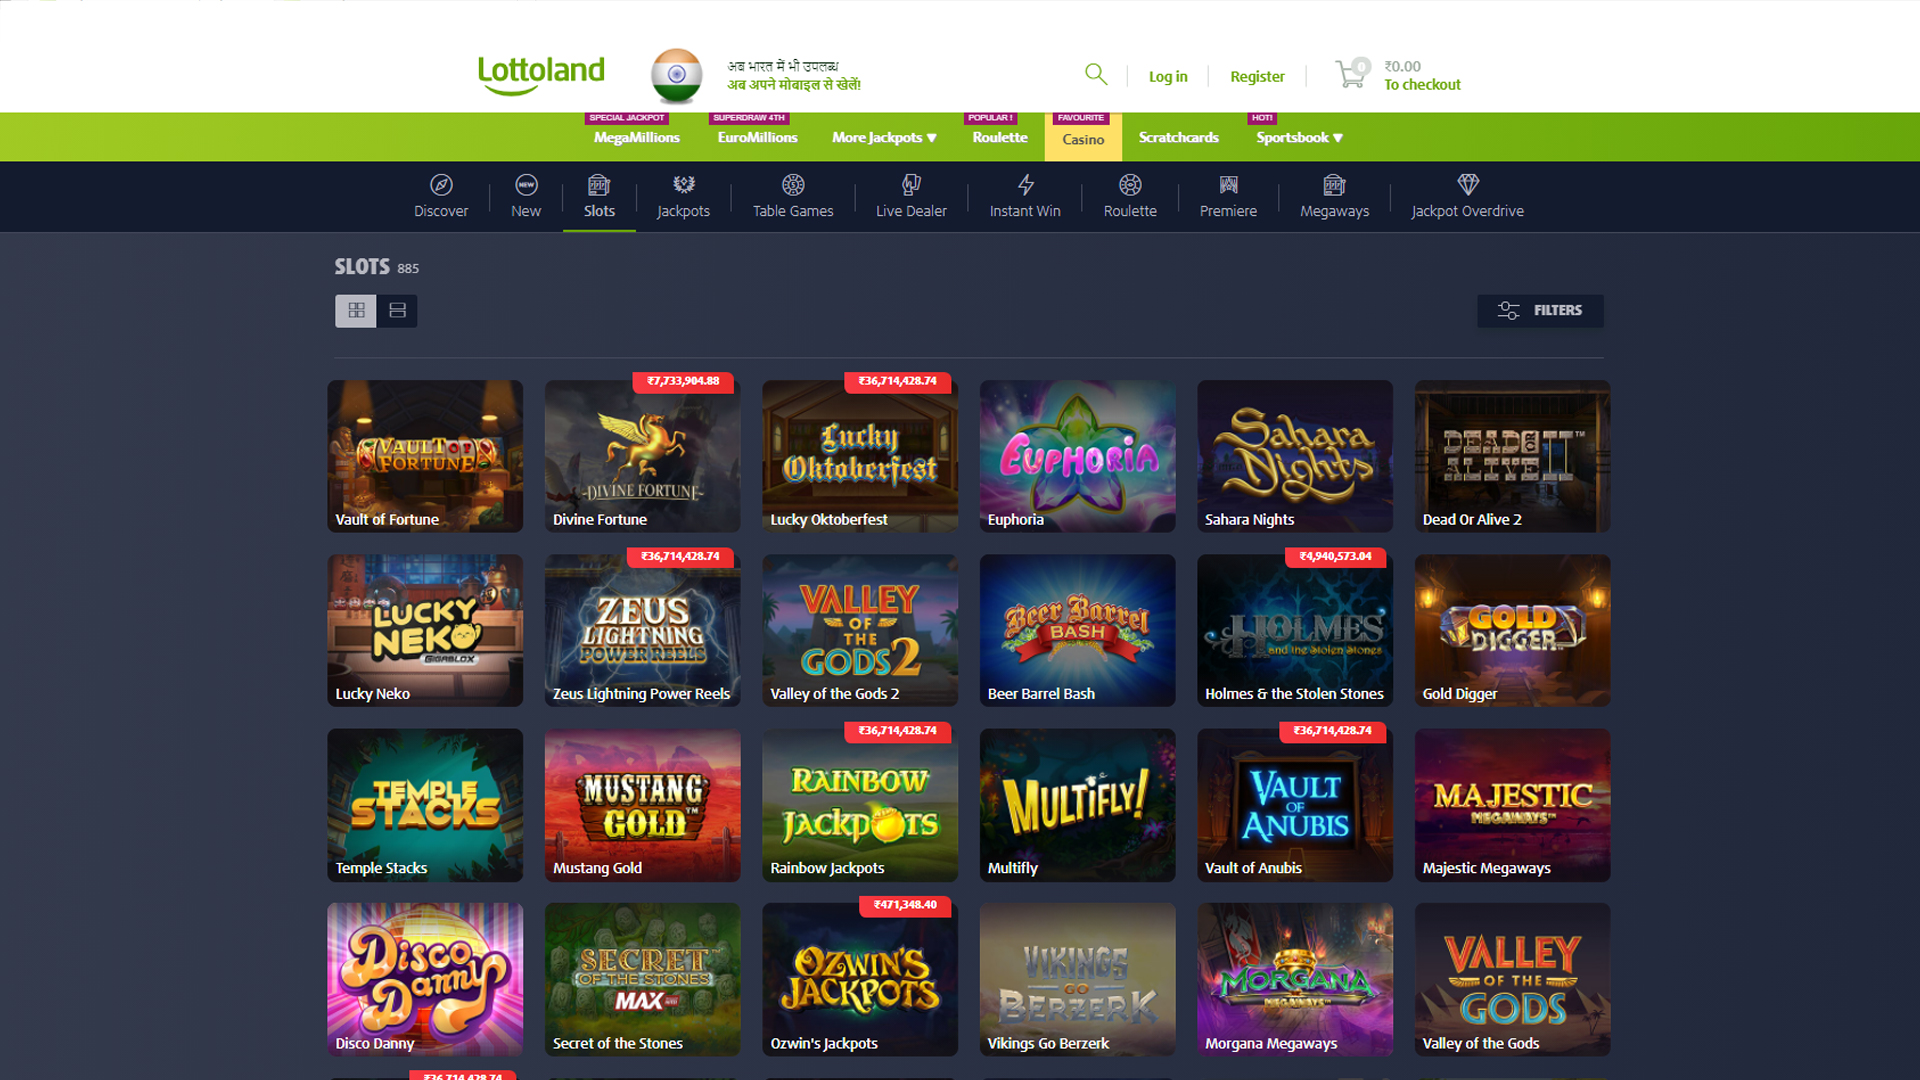 Play slot machines in Lottoland Casino.